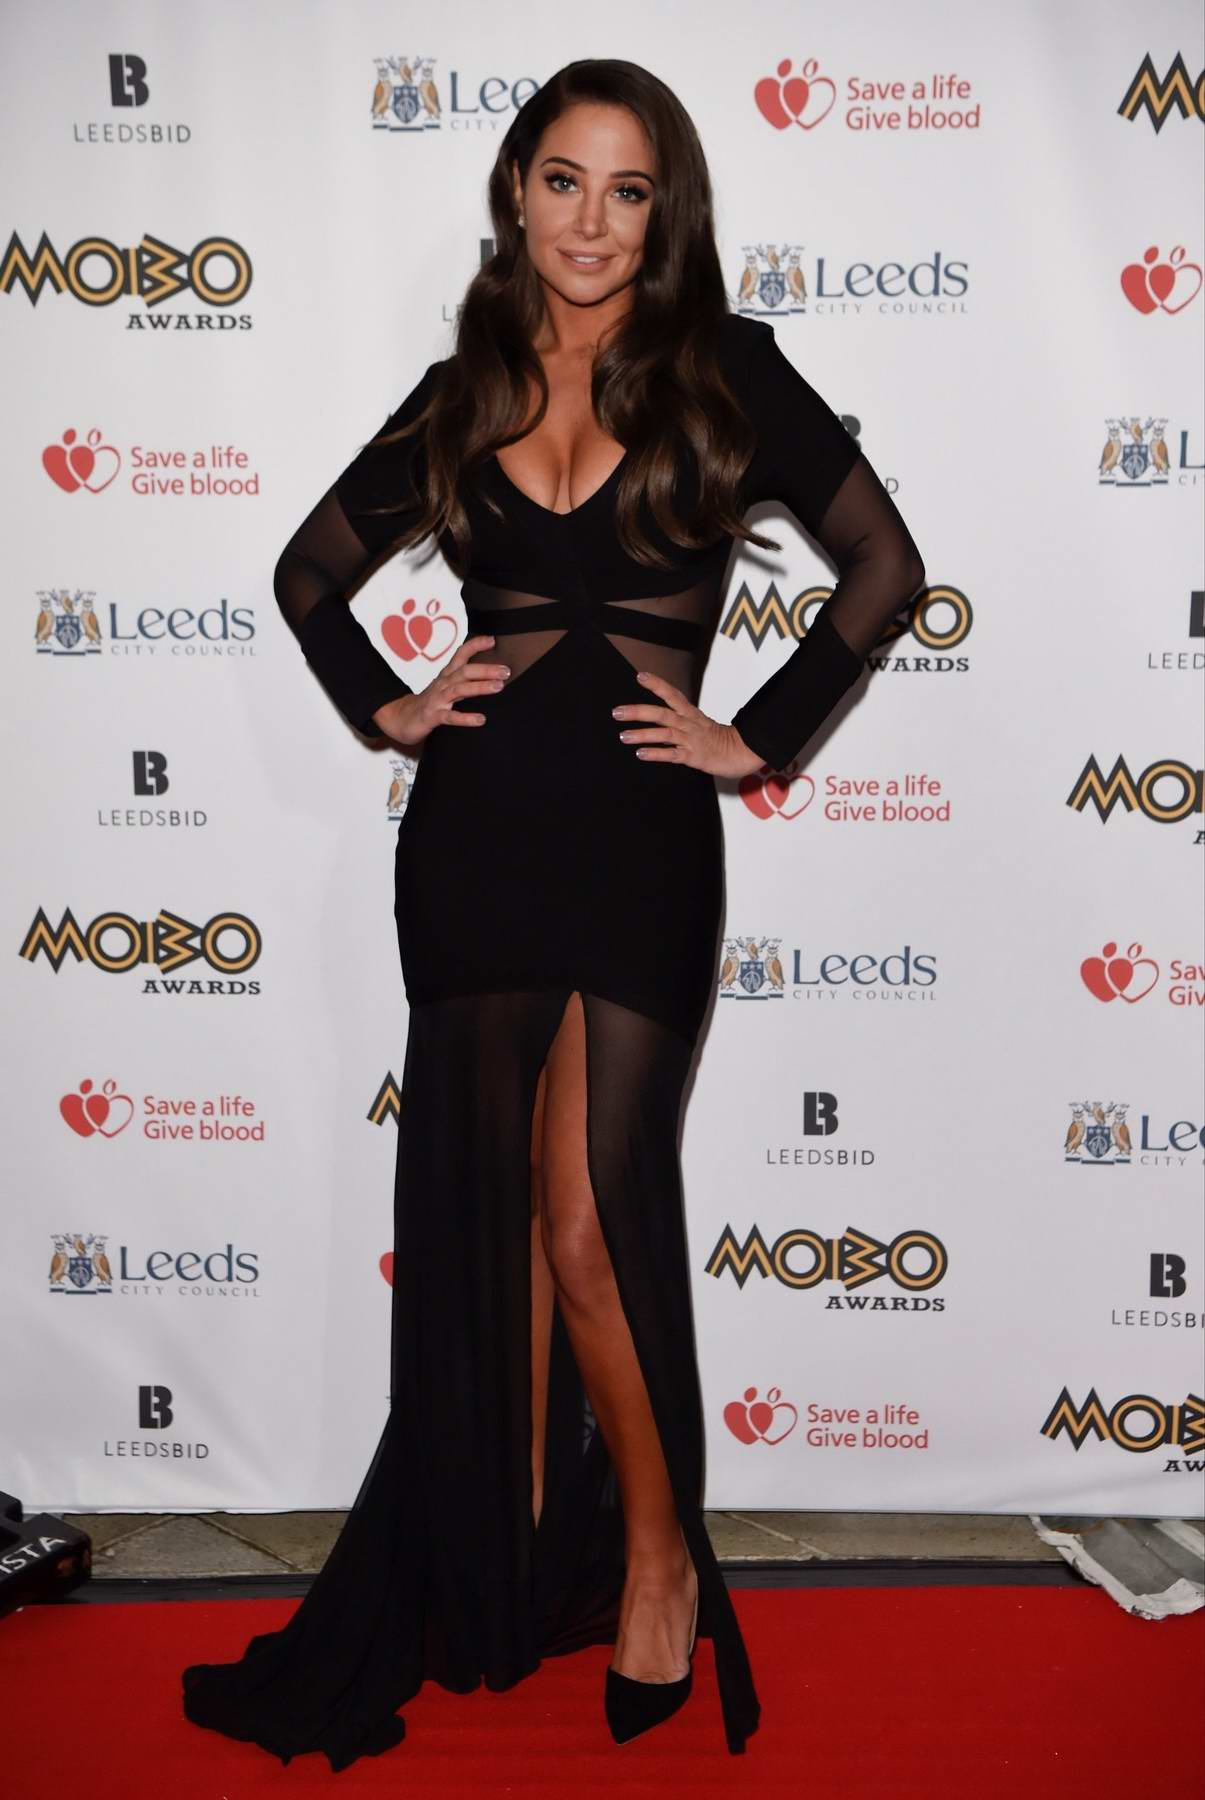 Tulisa Contostavlos at the Mobo Awards at the First Direct Arena in Leeds, UK